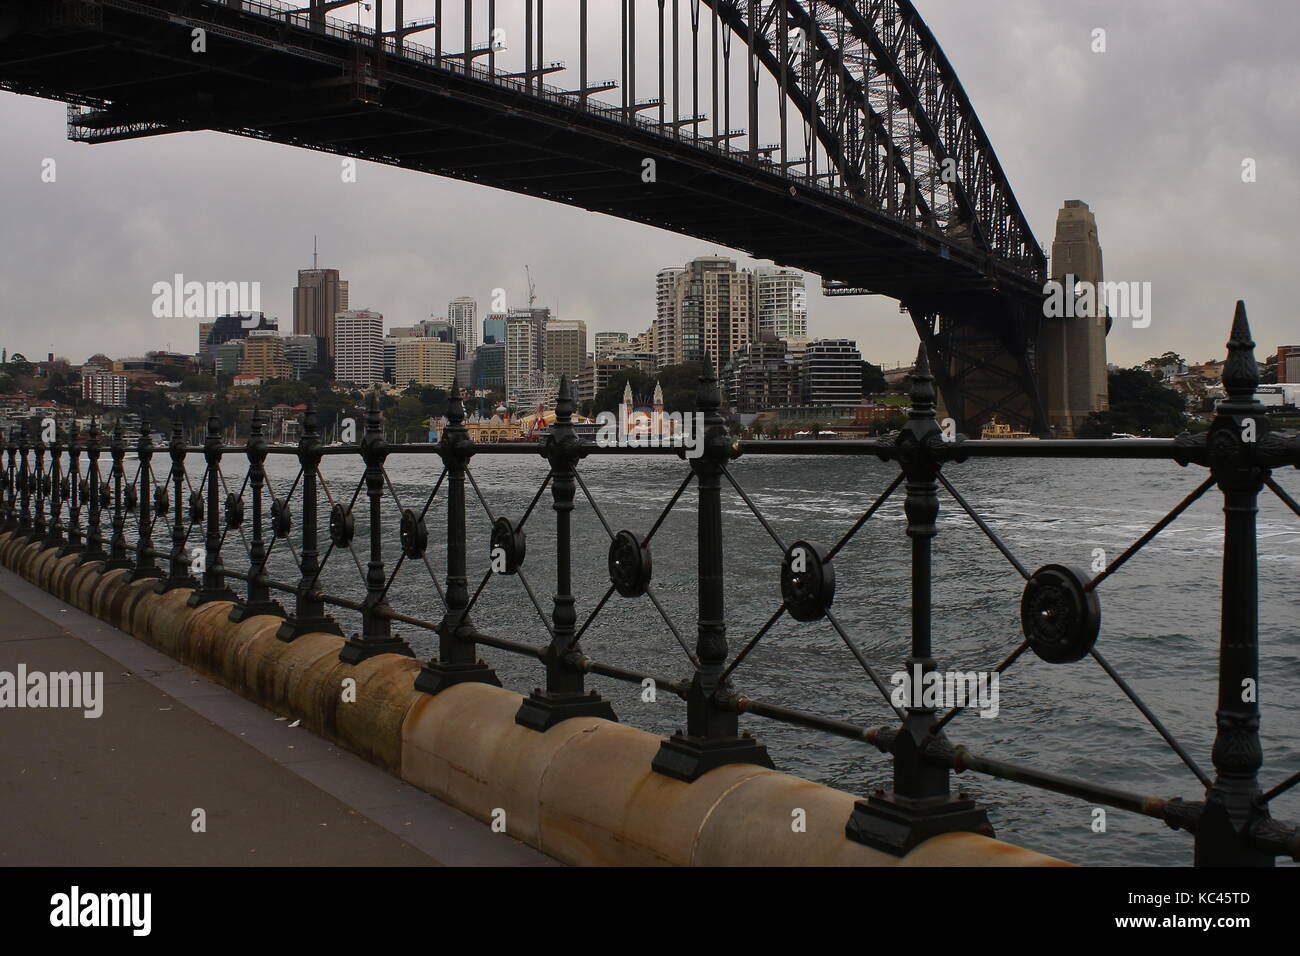 Glimpse of the Sydney Harbour Bridge from near The Rocks, NSW, Australia - Stock Image